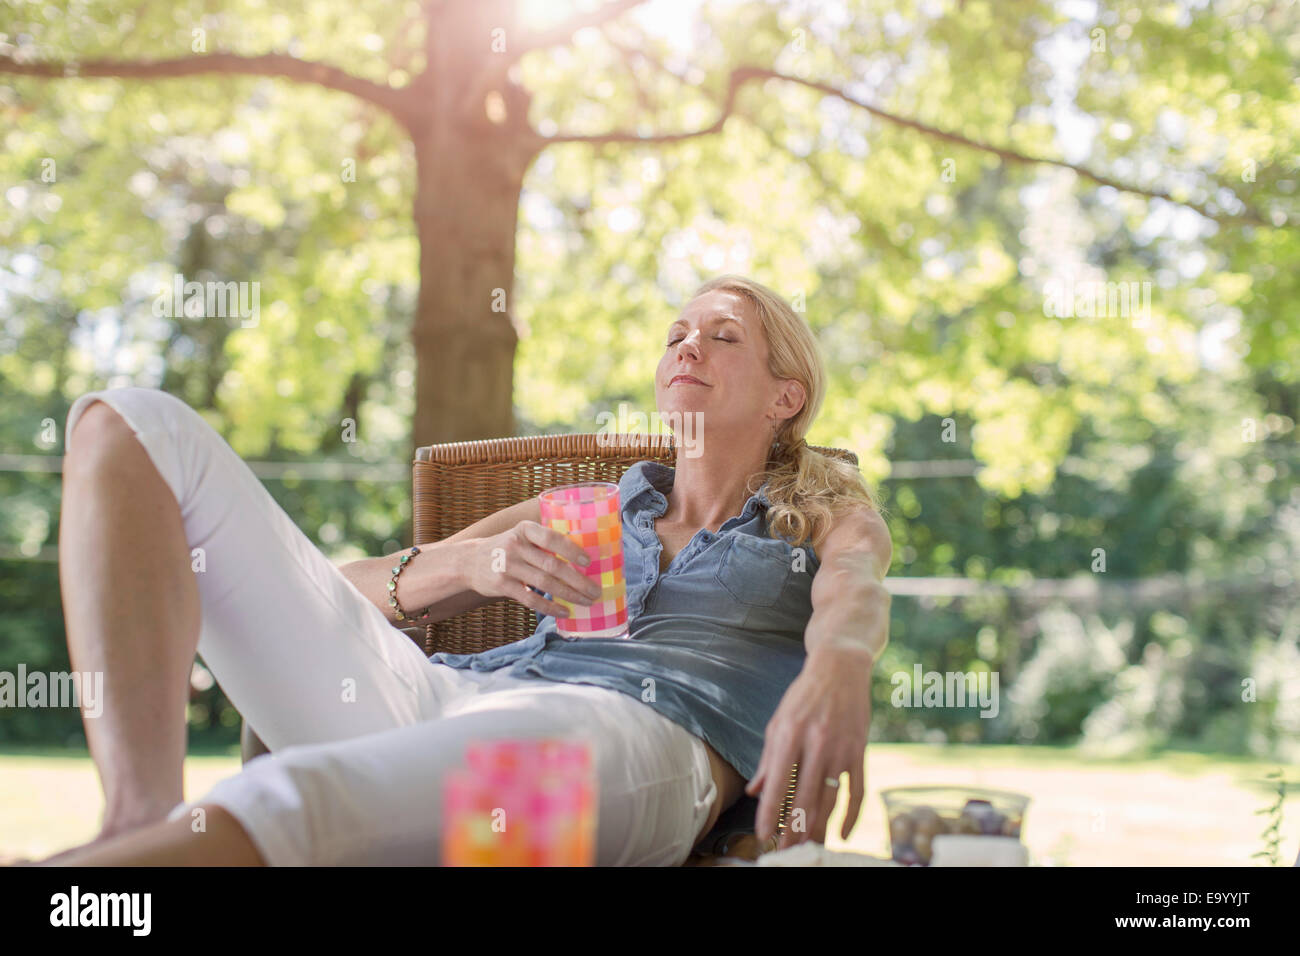 Mature woman relaxing in garden with drink - Stock Image